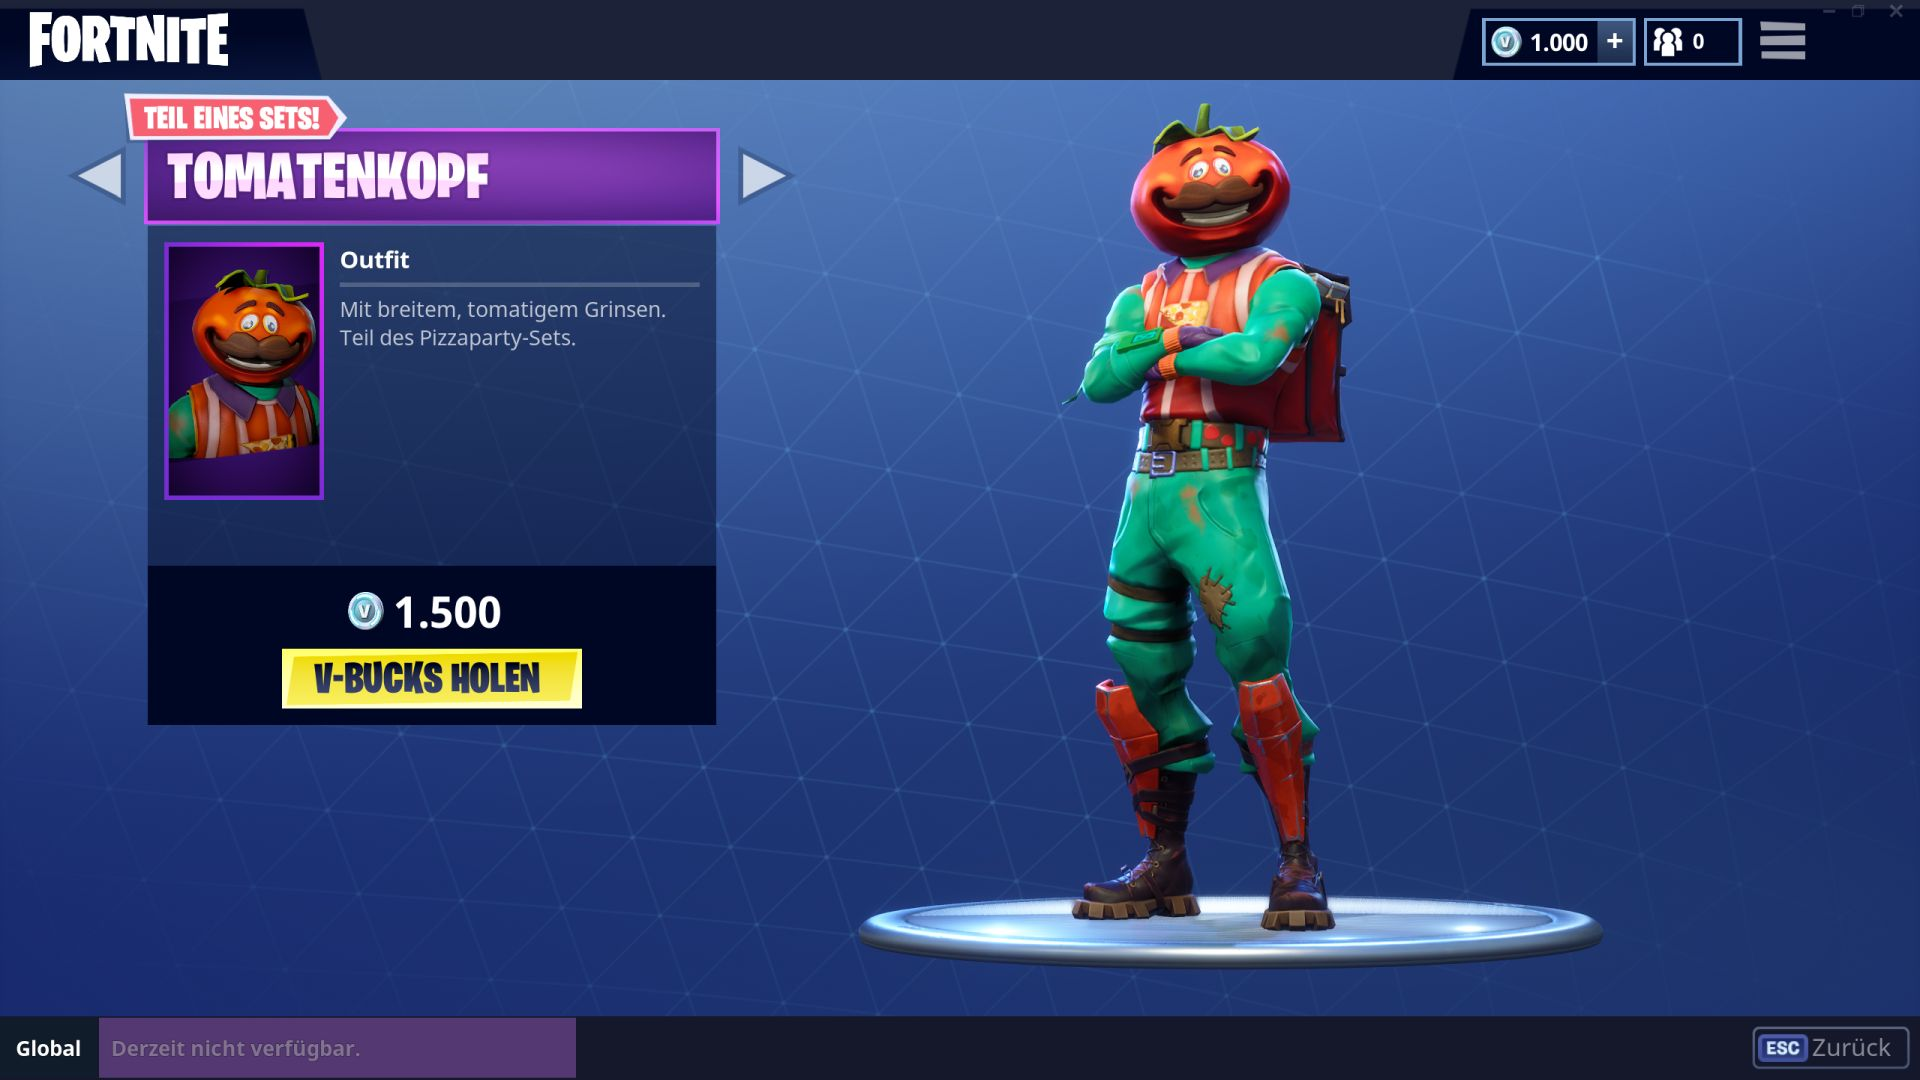 Fortnite-Shop-Tomatenkopf-06